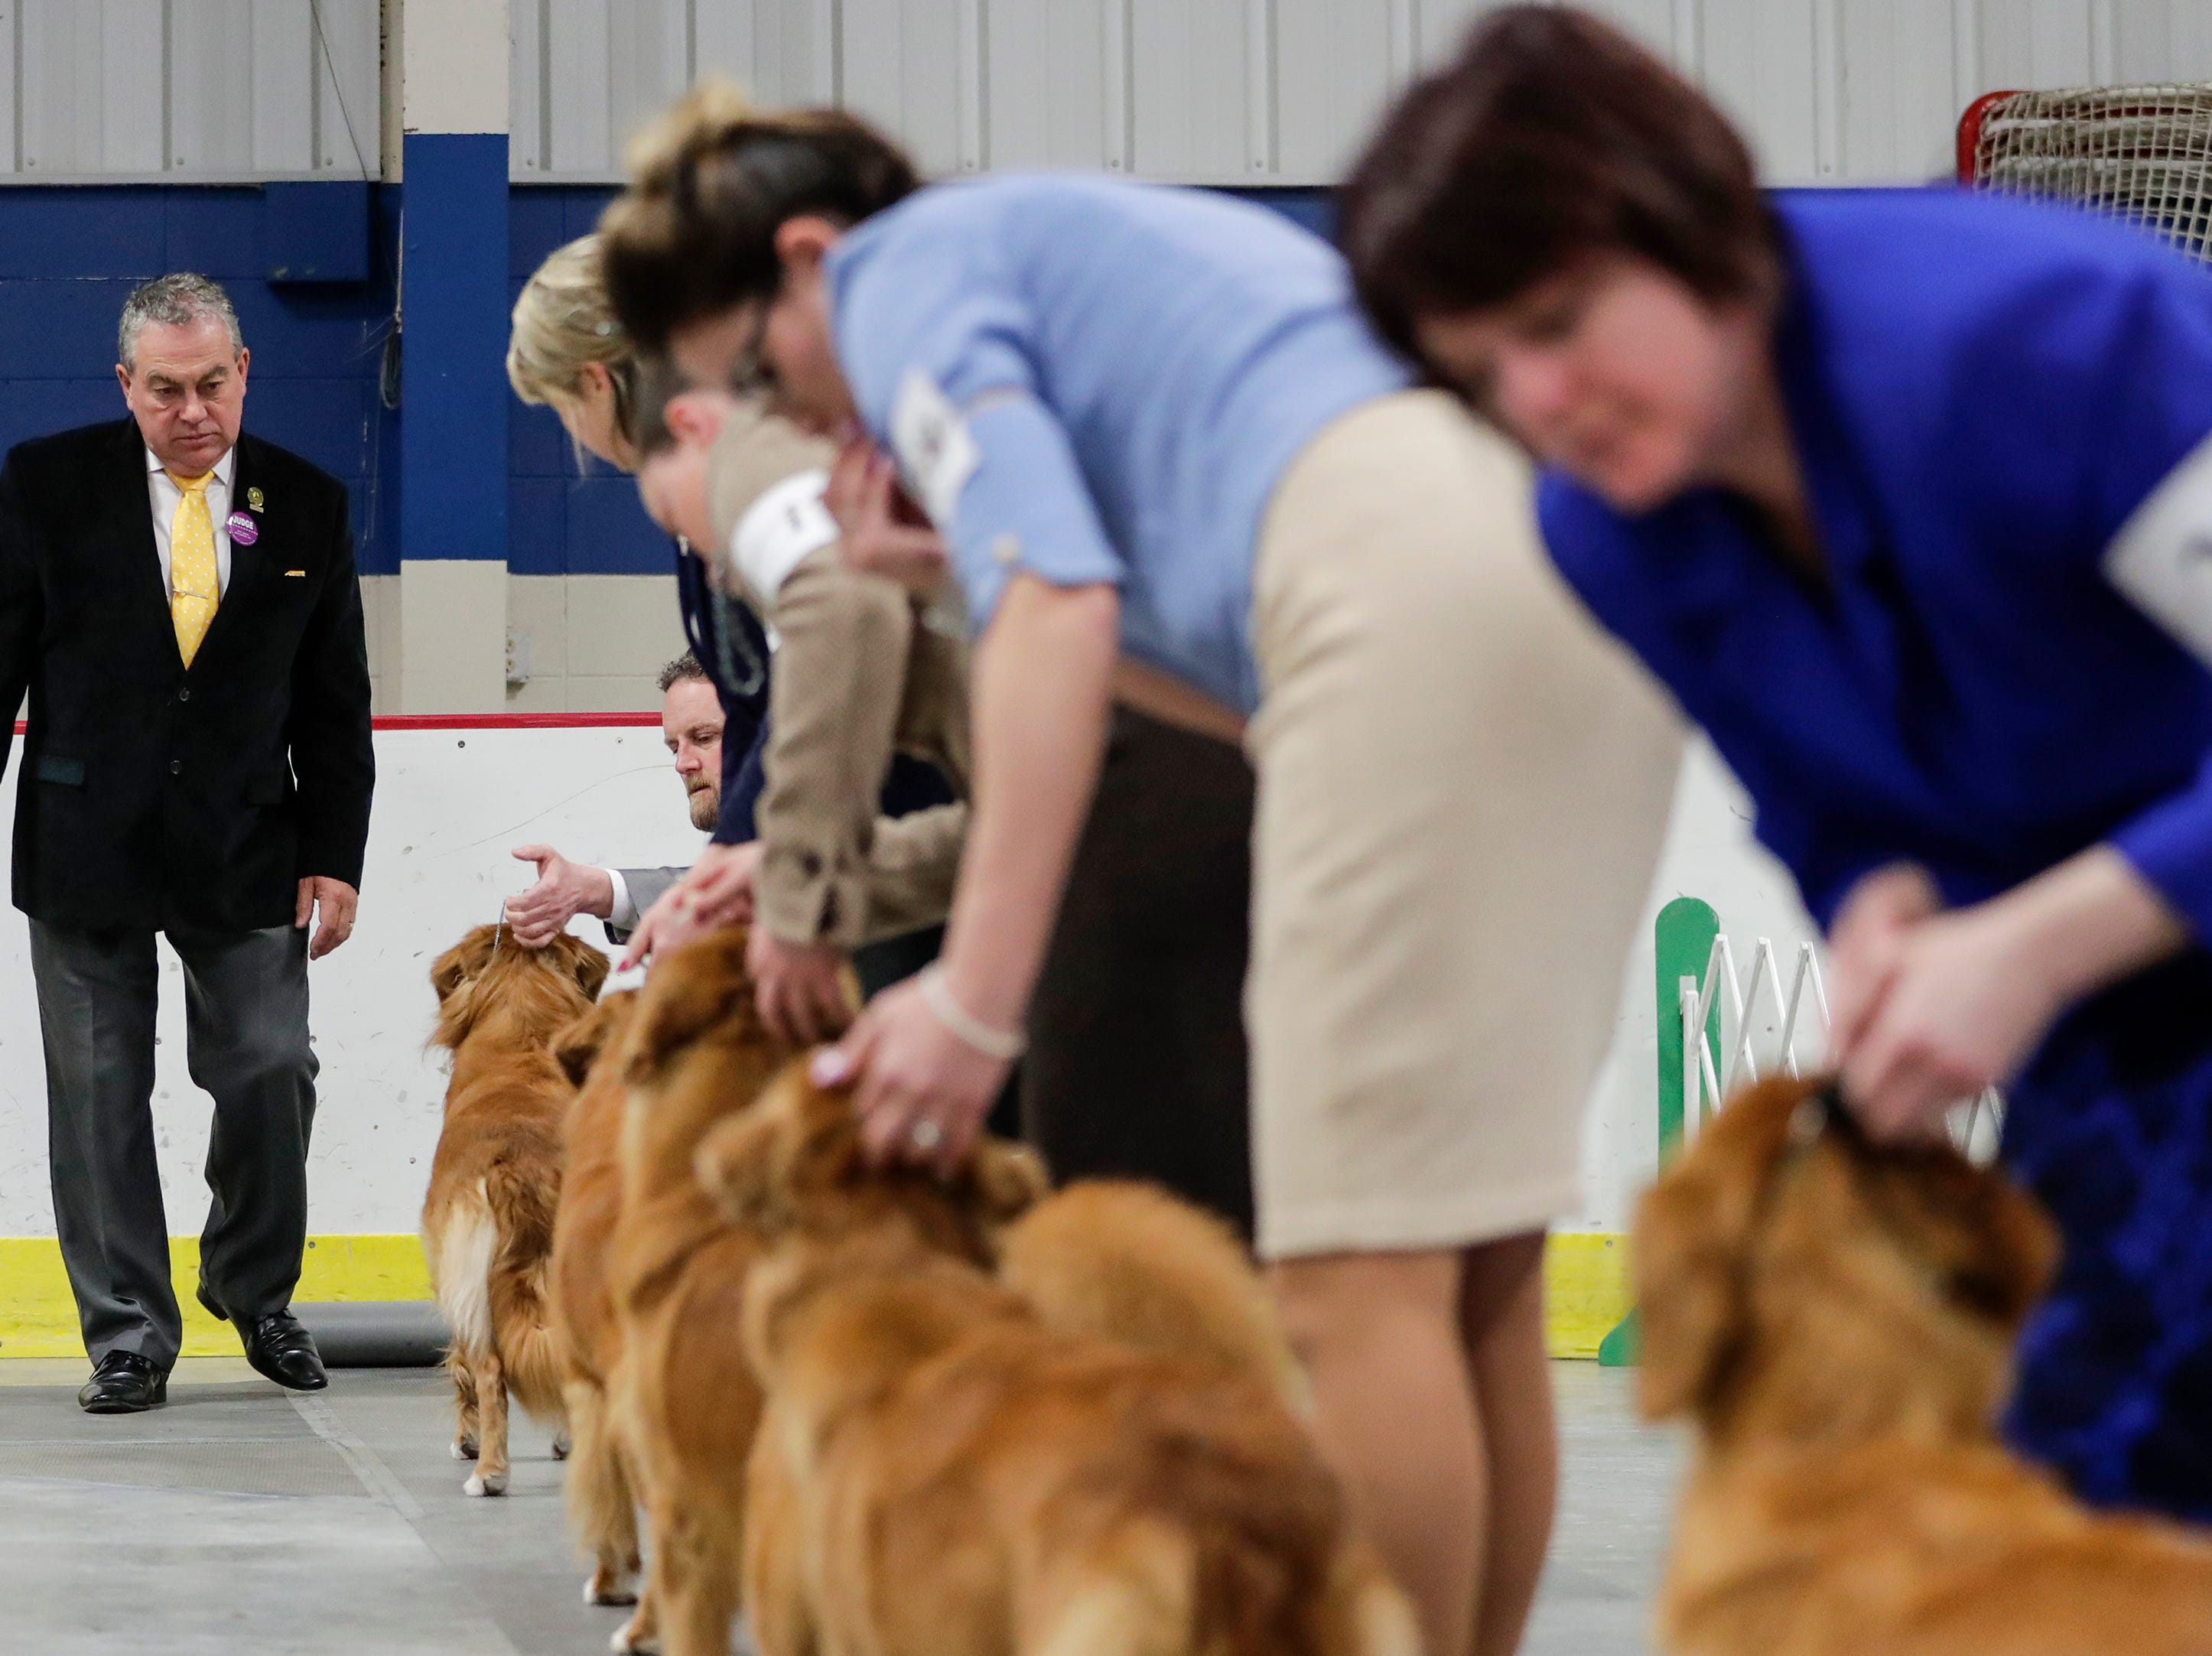 Judge Christopher T. Moore walks down a line of Nova Scotia duck tolling retrievers during the Northeast Wisconsin Dog Show Classic at the Manitowoc County Expo Center Thursday, March 28, 2019, in Manitowoc, Wis. Joshua Clark/USA TODAY NETWORK-Wisconsin